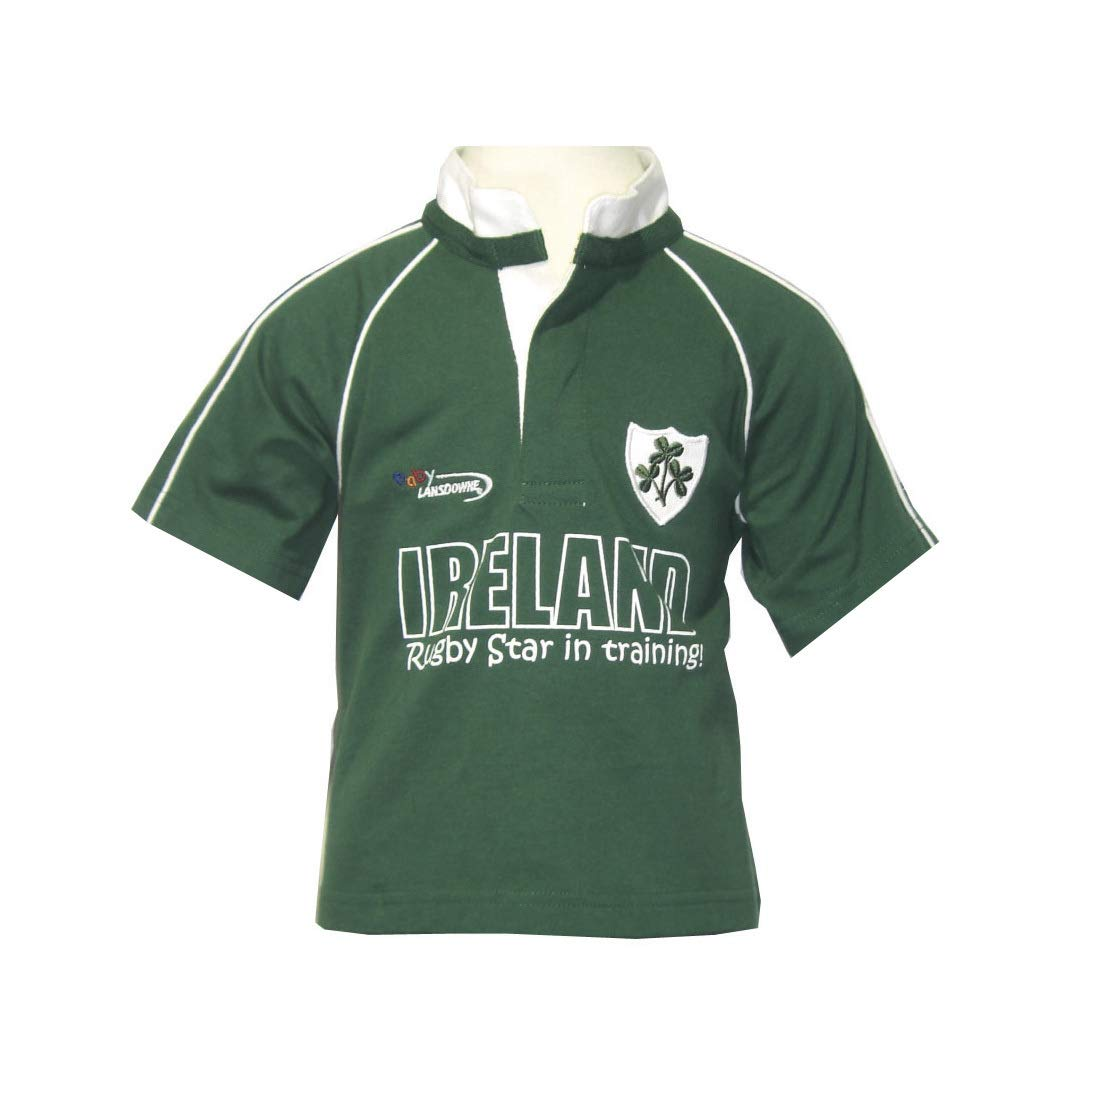 Rugby Star Babies Rugby Shirt Carrolls Irish Gifts